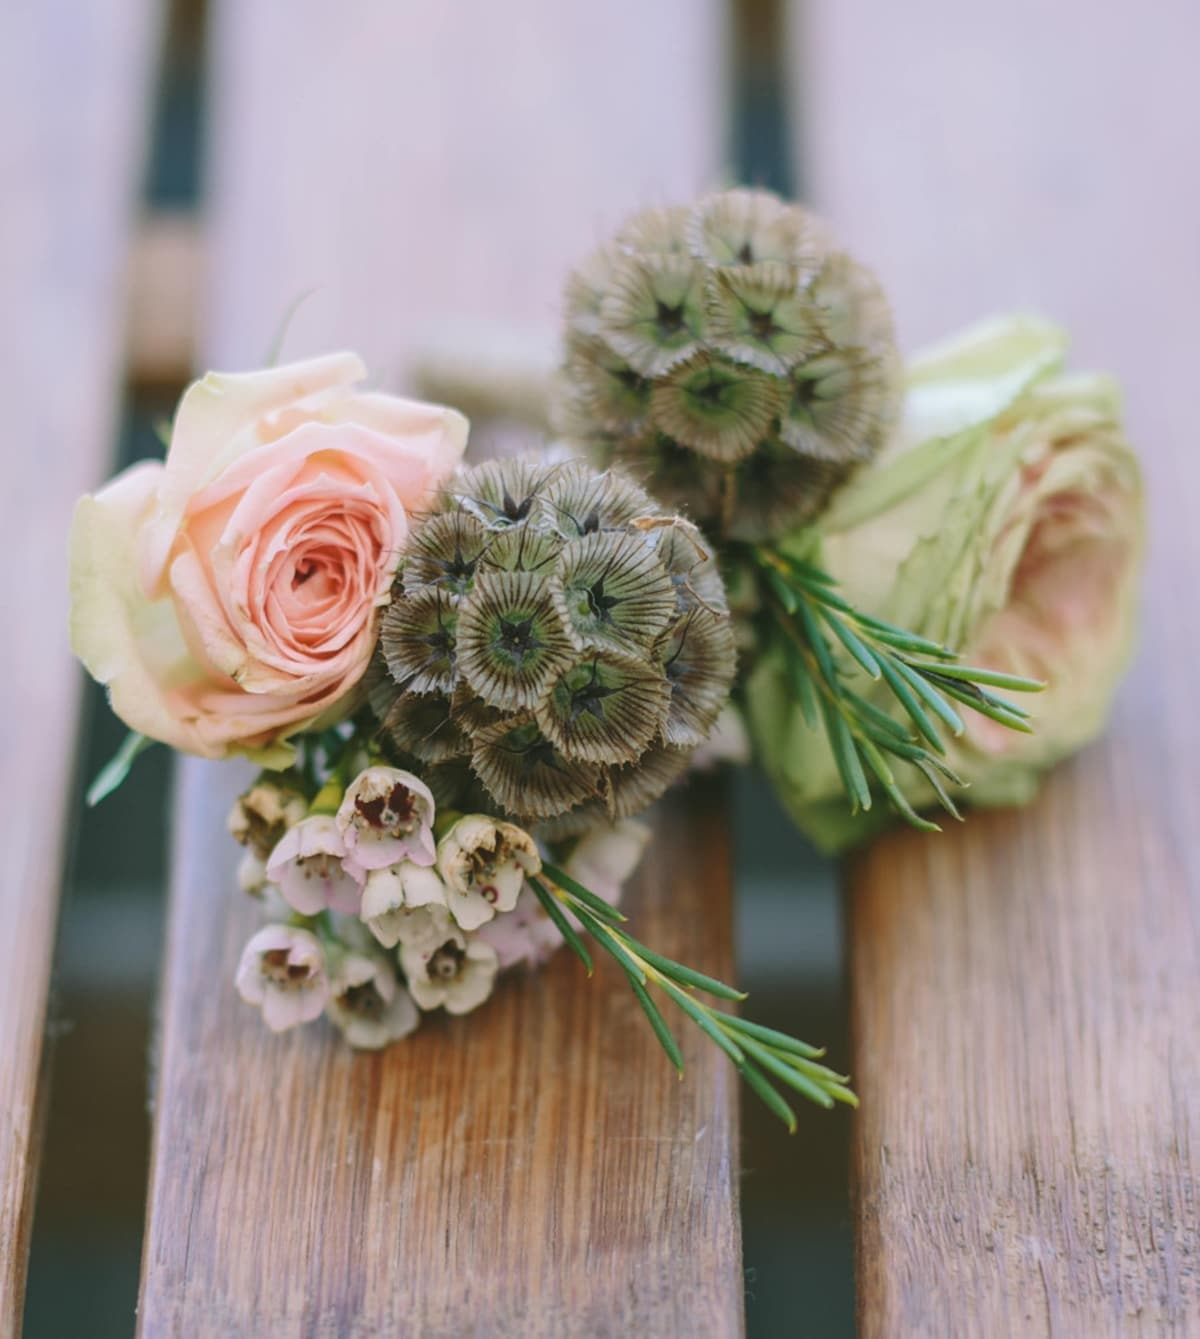 Choose your flowers based on your wedding style